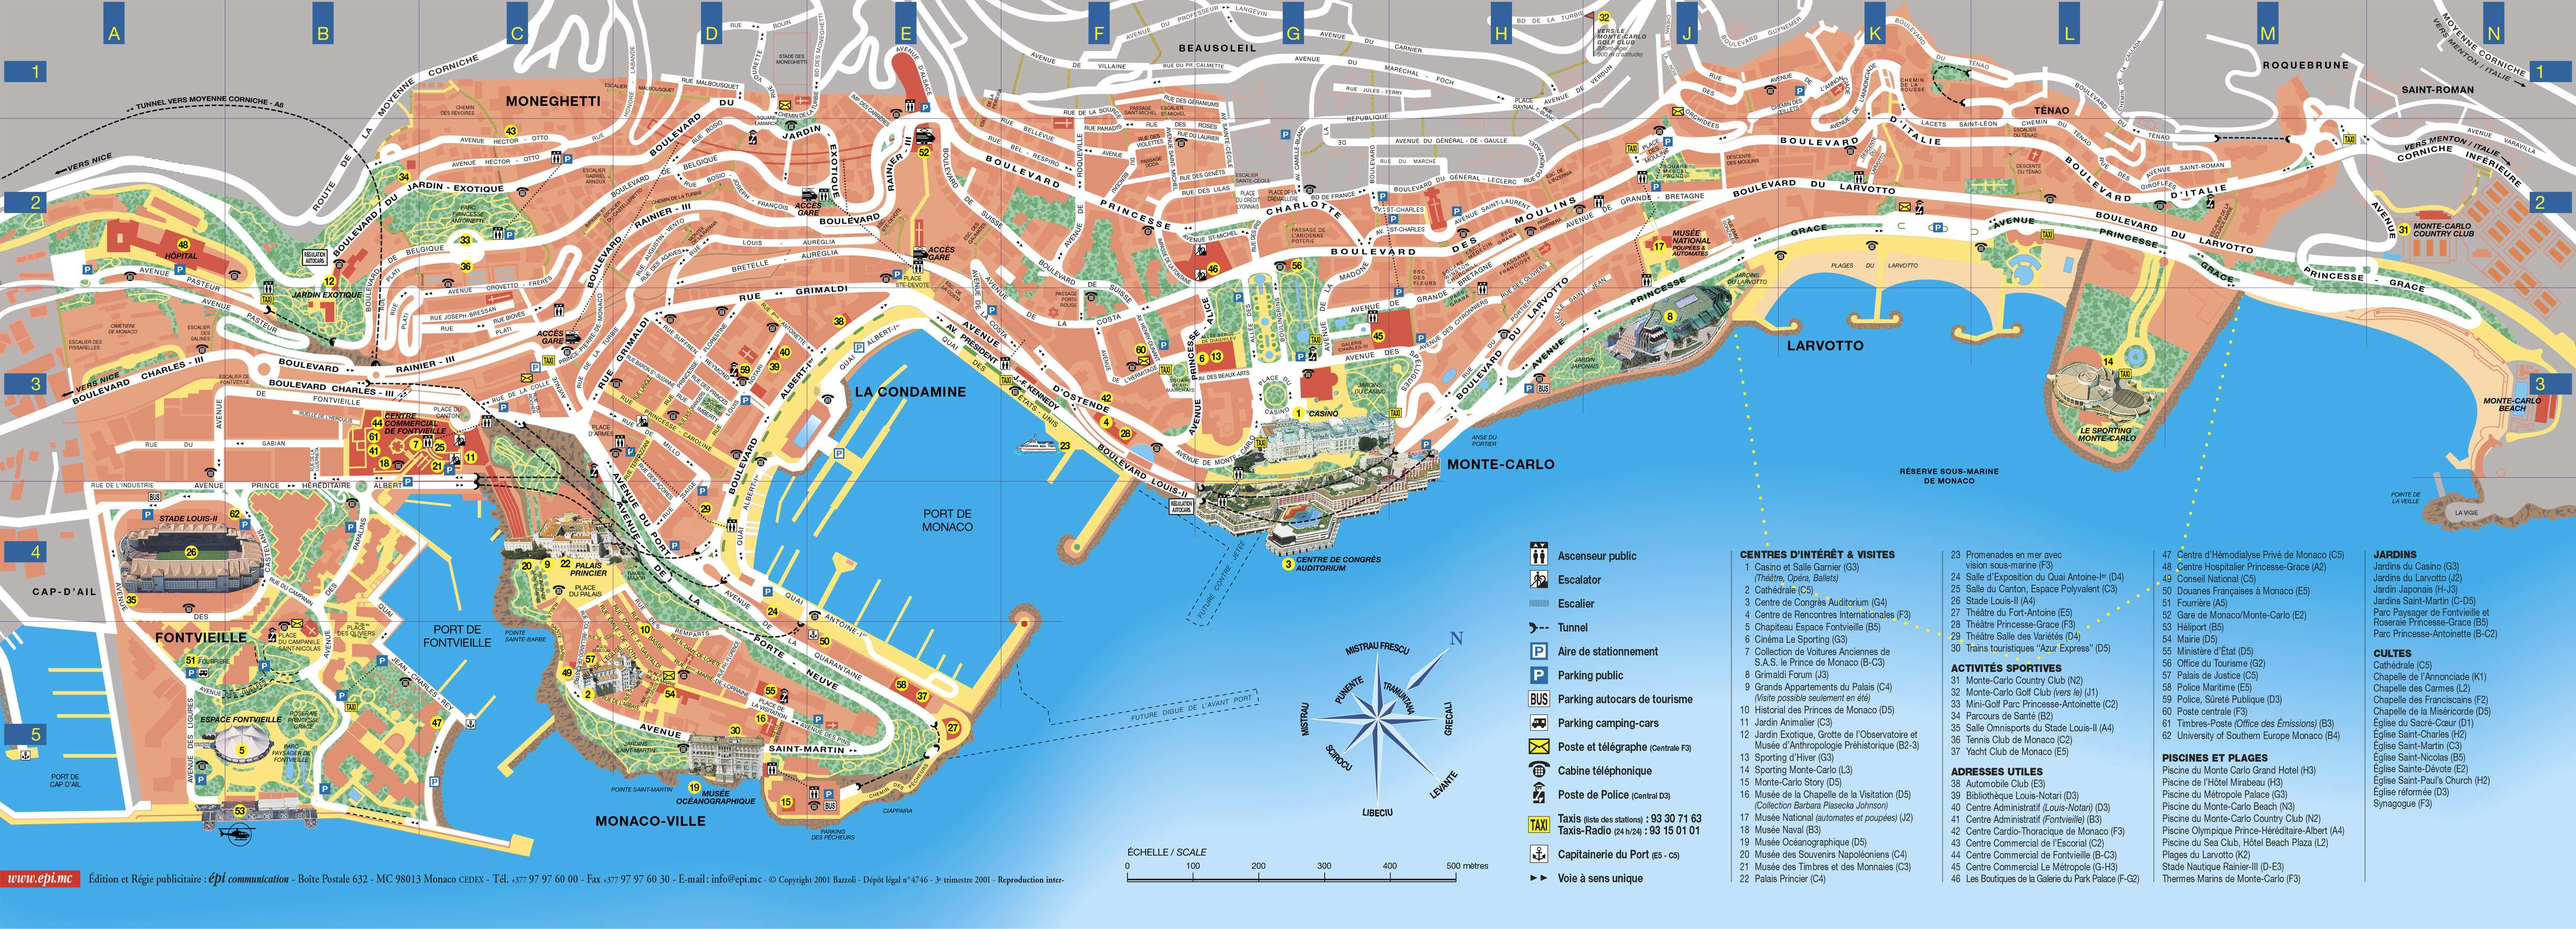 Monte Carlo Map Large Monte Carlo Maps for Free Download and Print | High